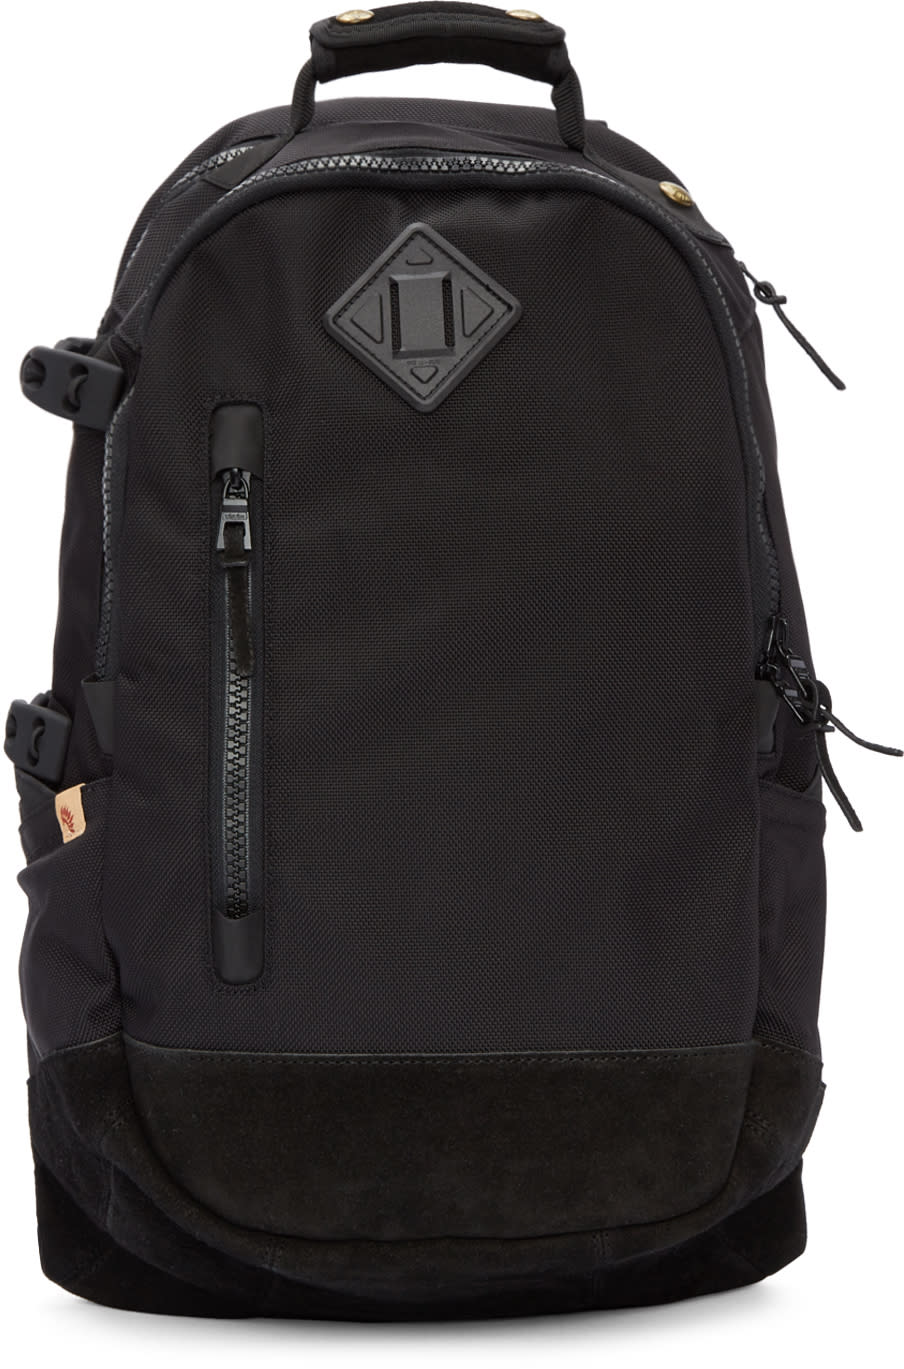 Visvim Black Ballistic 20l Backpack